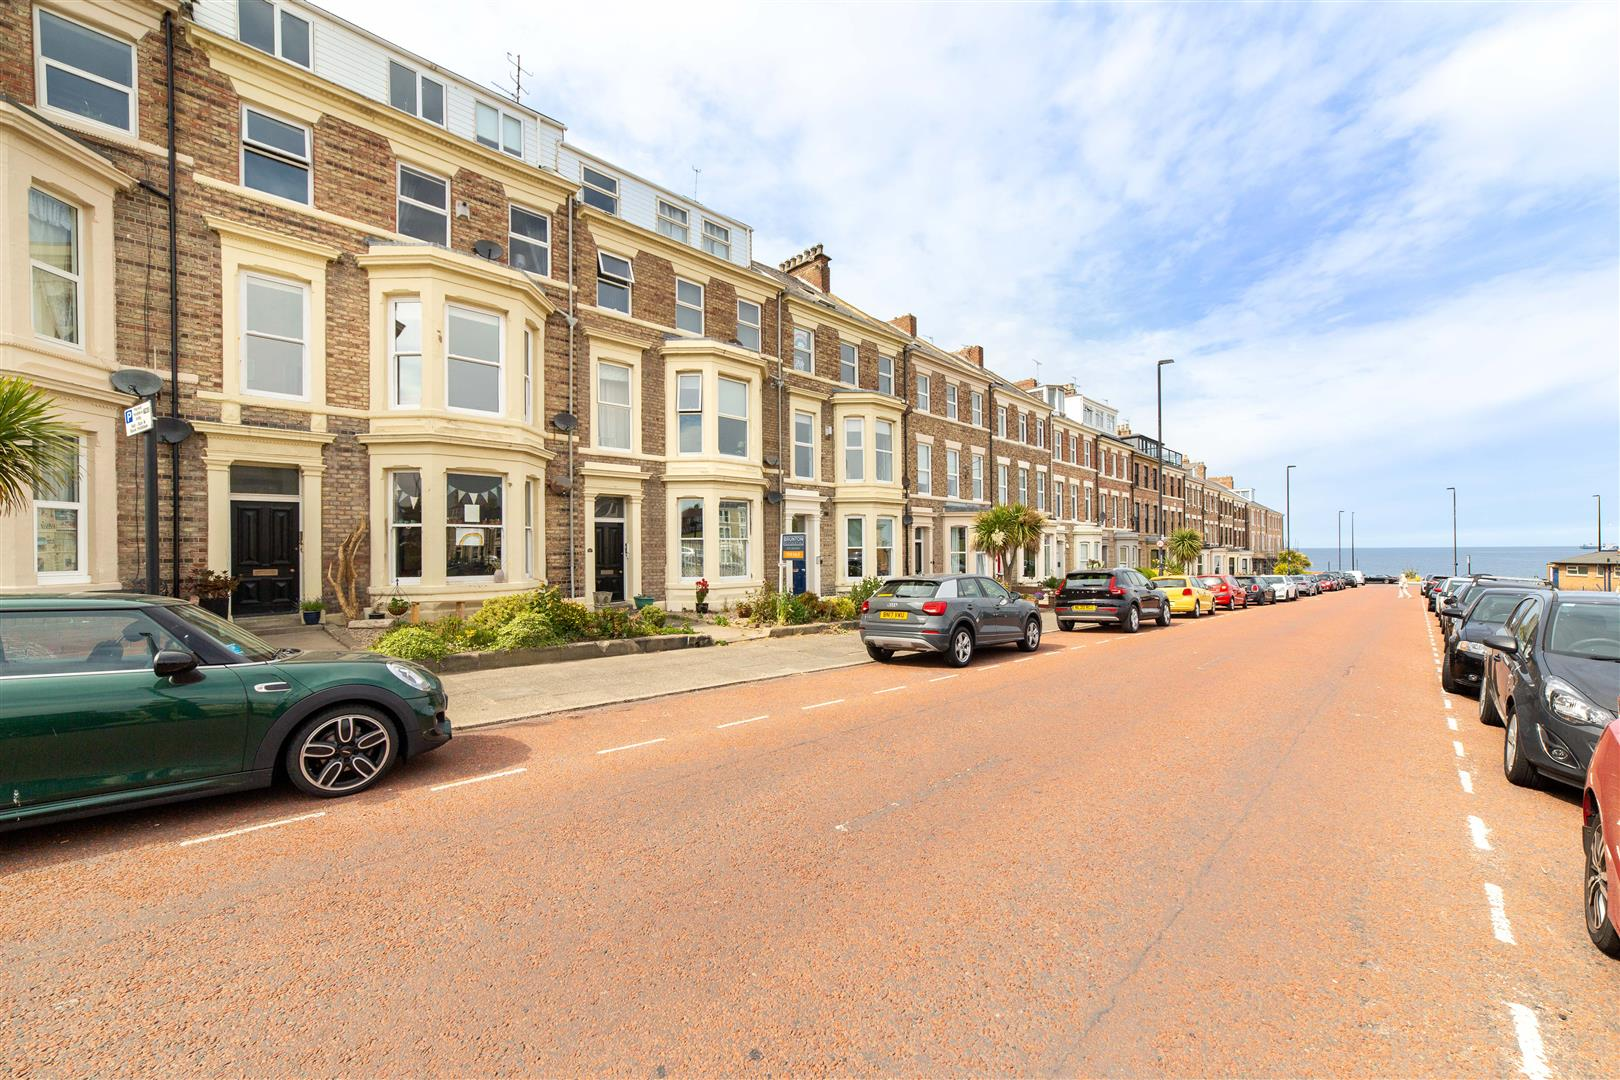 2 bed flat for sale in Tynemouth, NE30 4JX, NE30